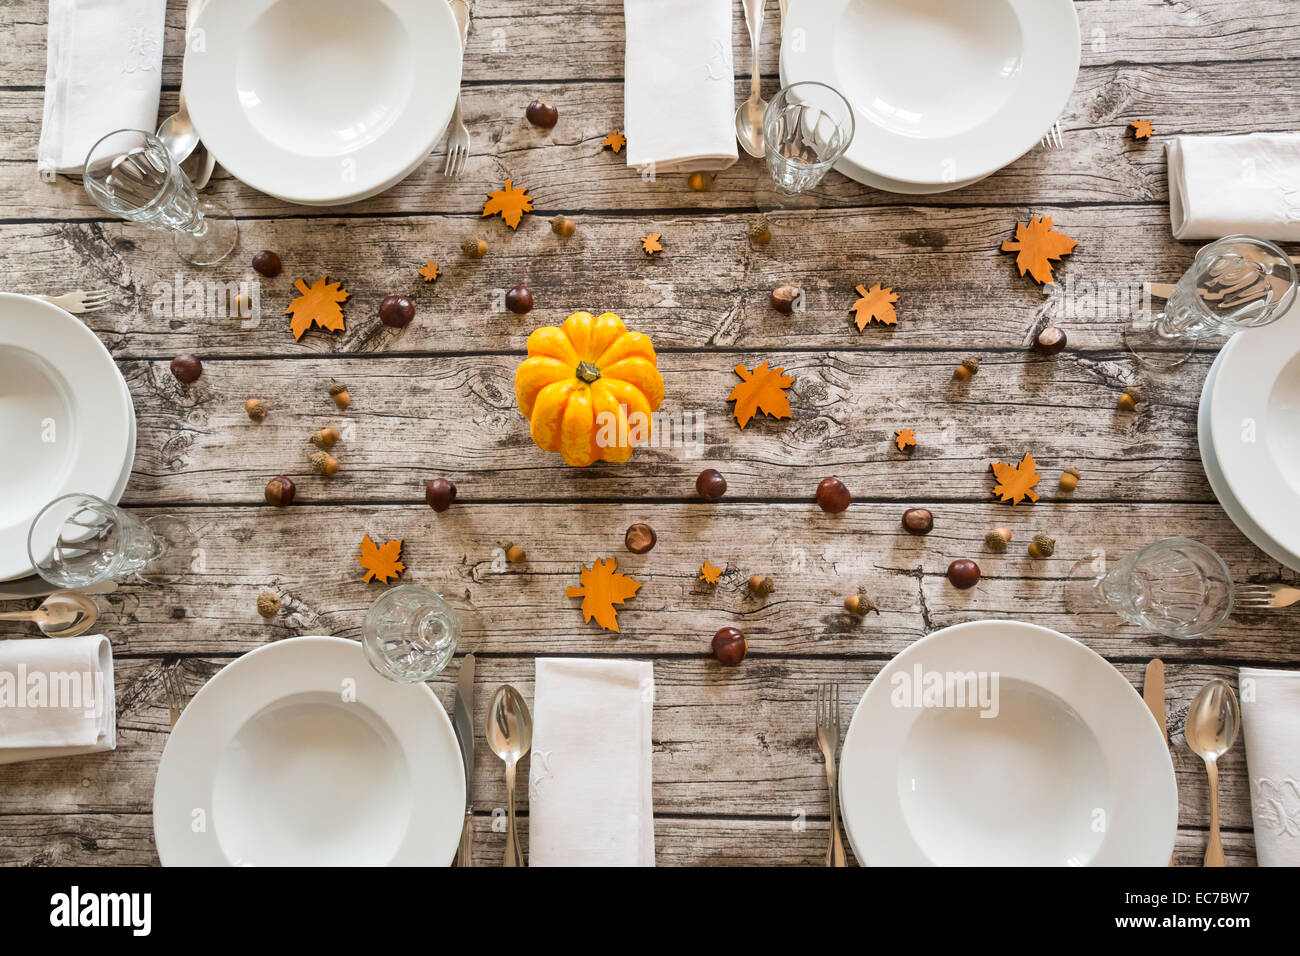 Autumnal laid table with yellow pumpkin, chestnuts and acorns - Stock Image